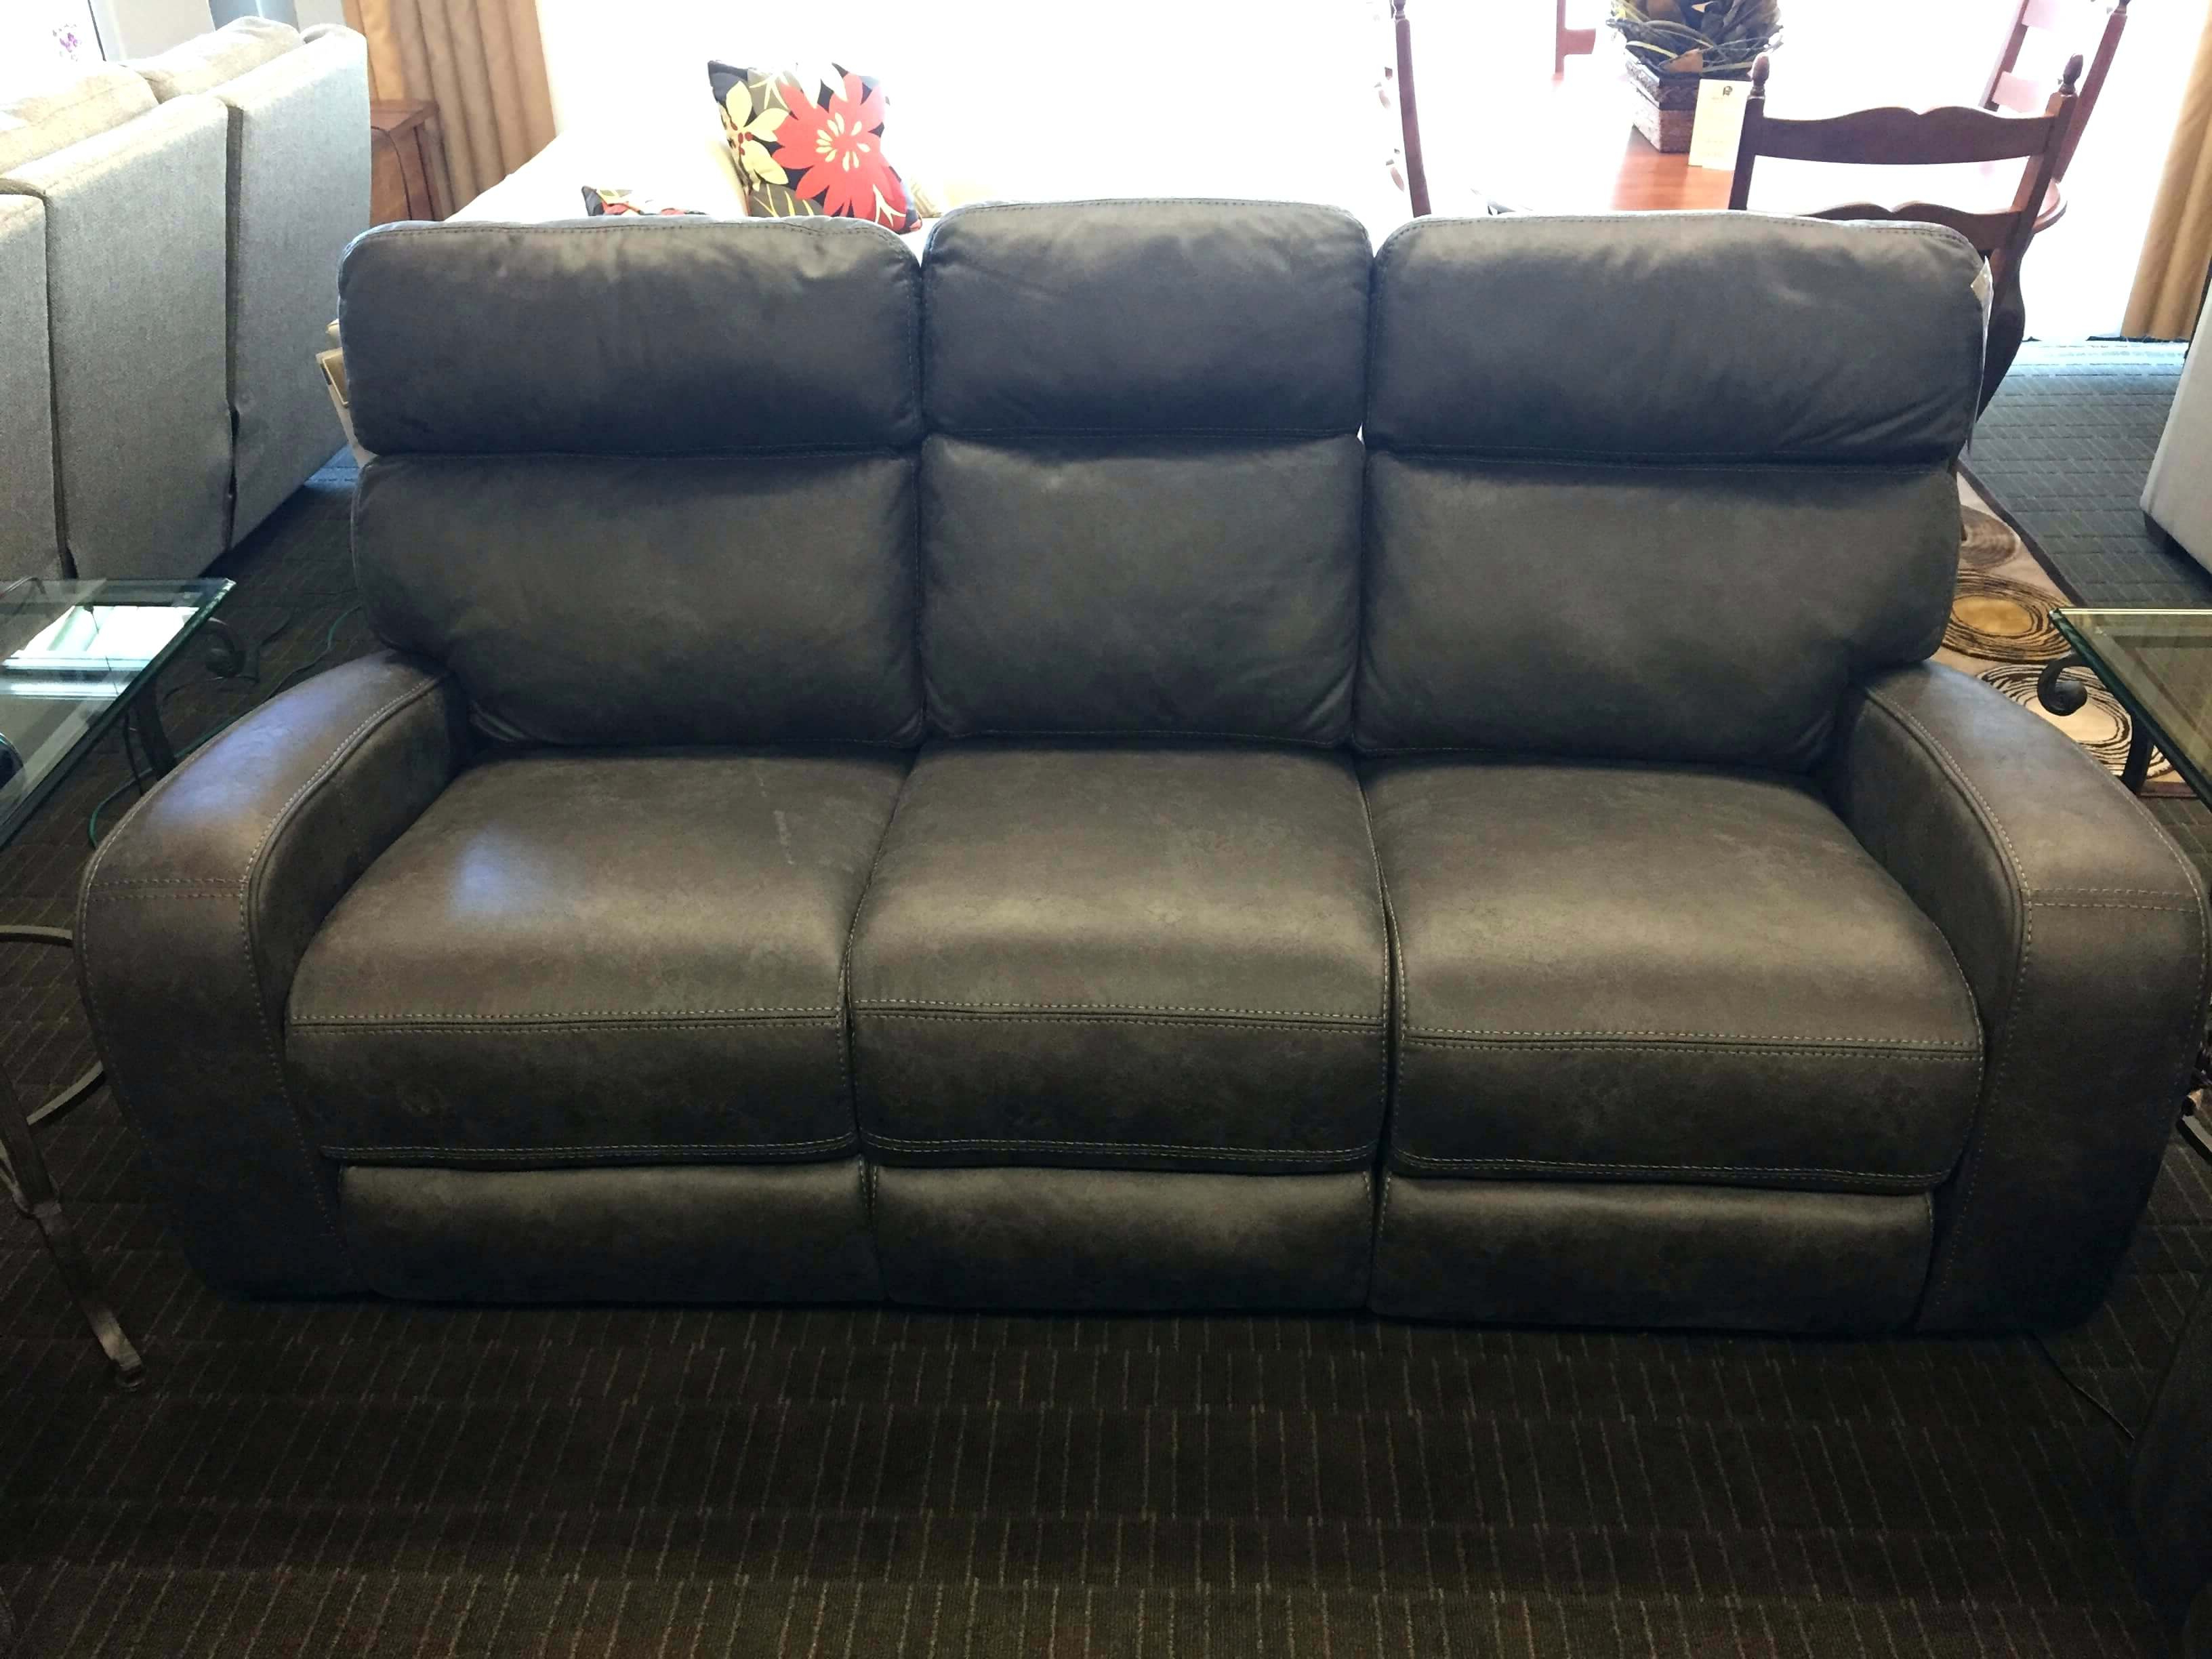 Marcus Chocolate 6 Piece Sectionals With Power Headrest And Usb Within 2018 Couch Usb Outlet (View 9 of 20)